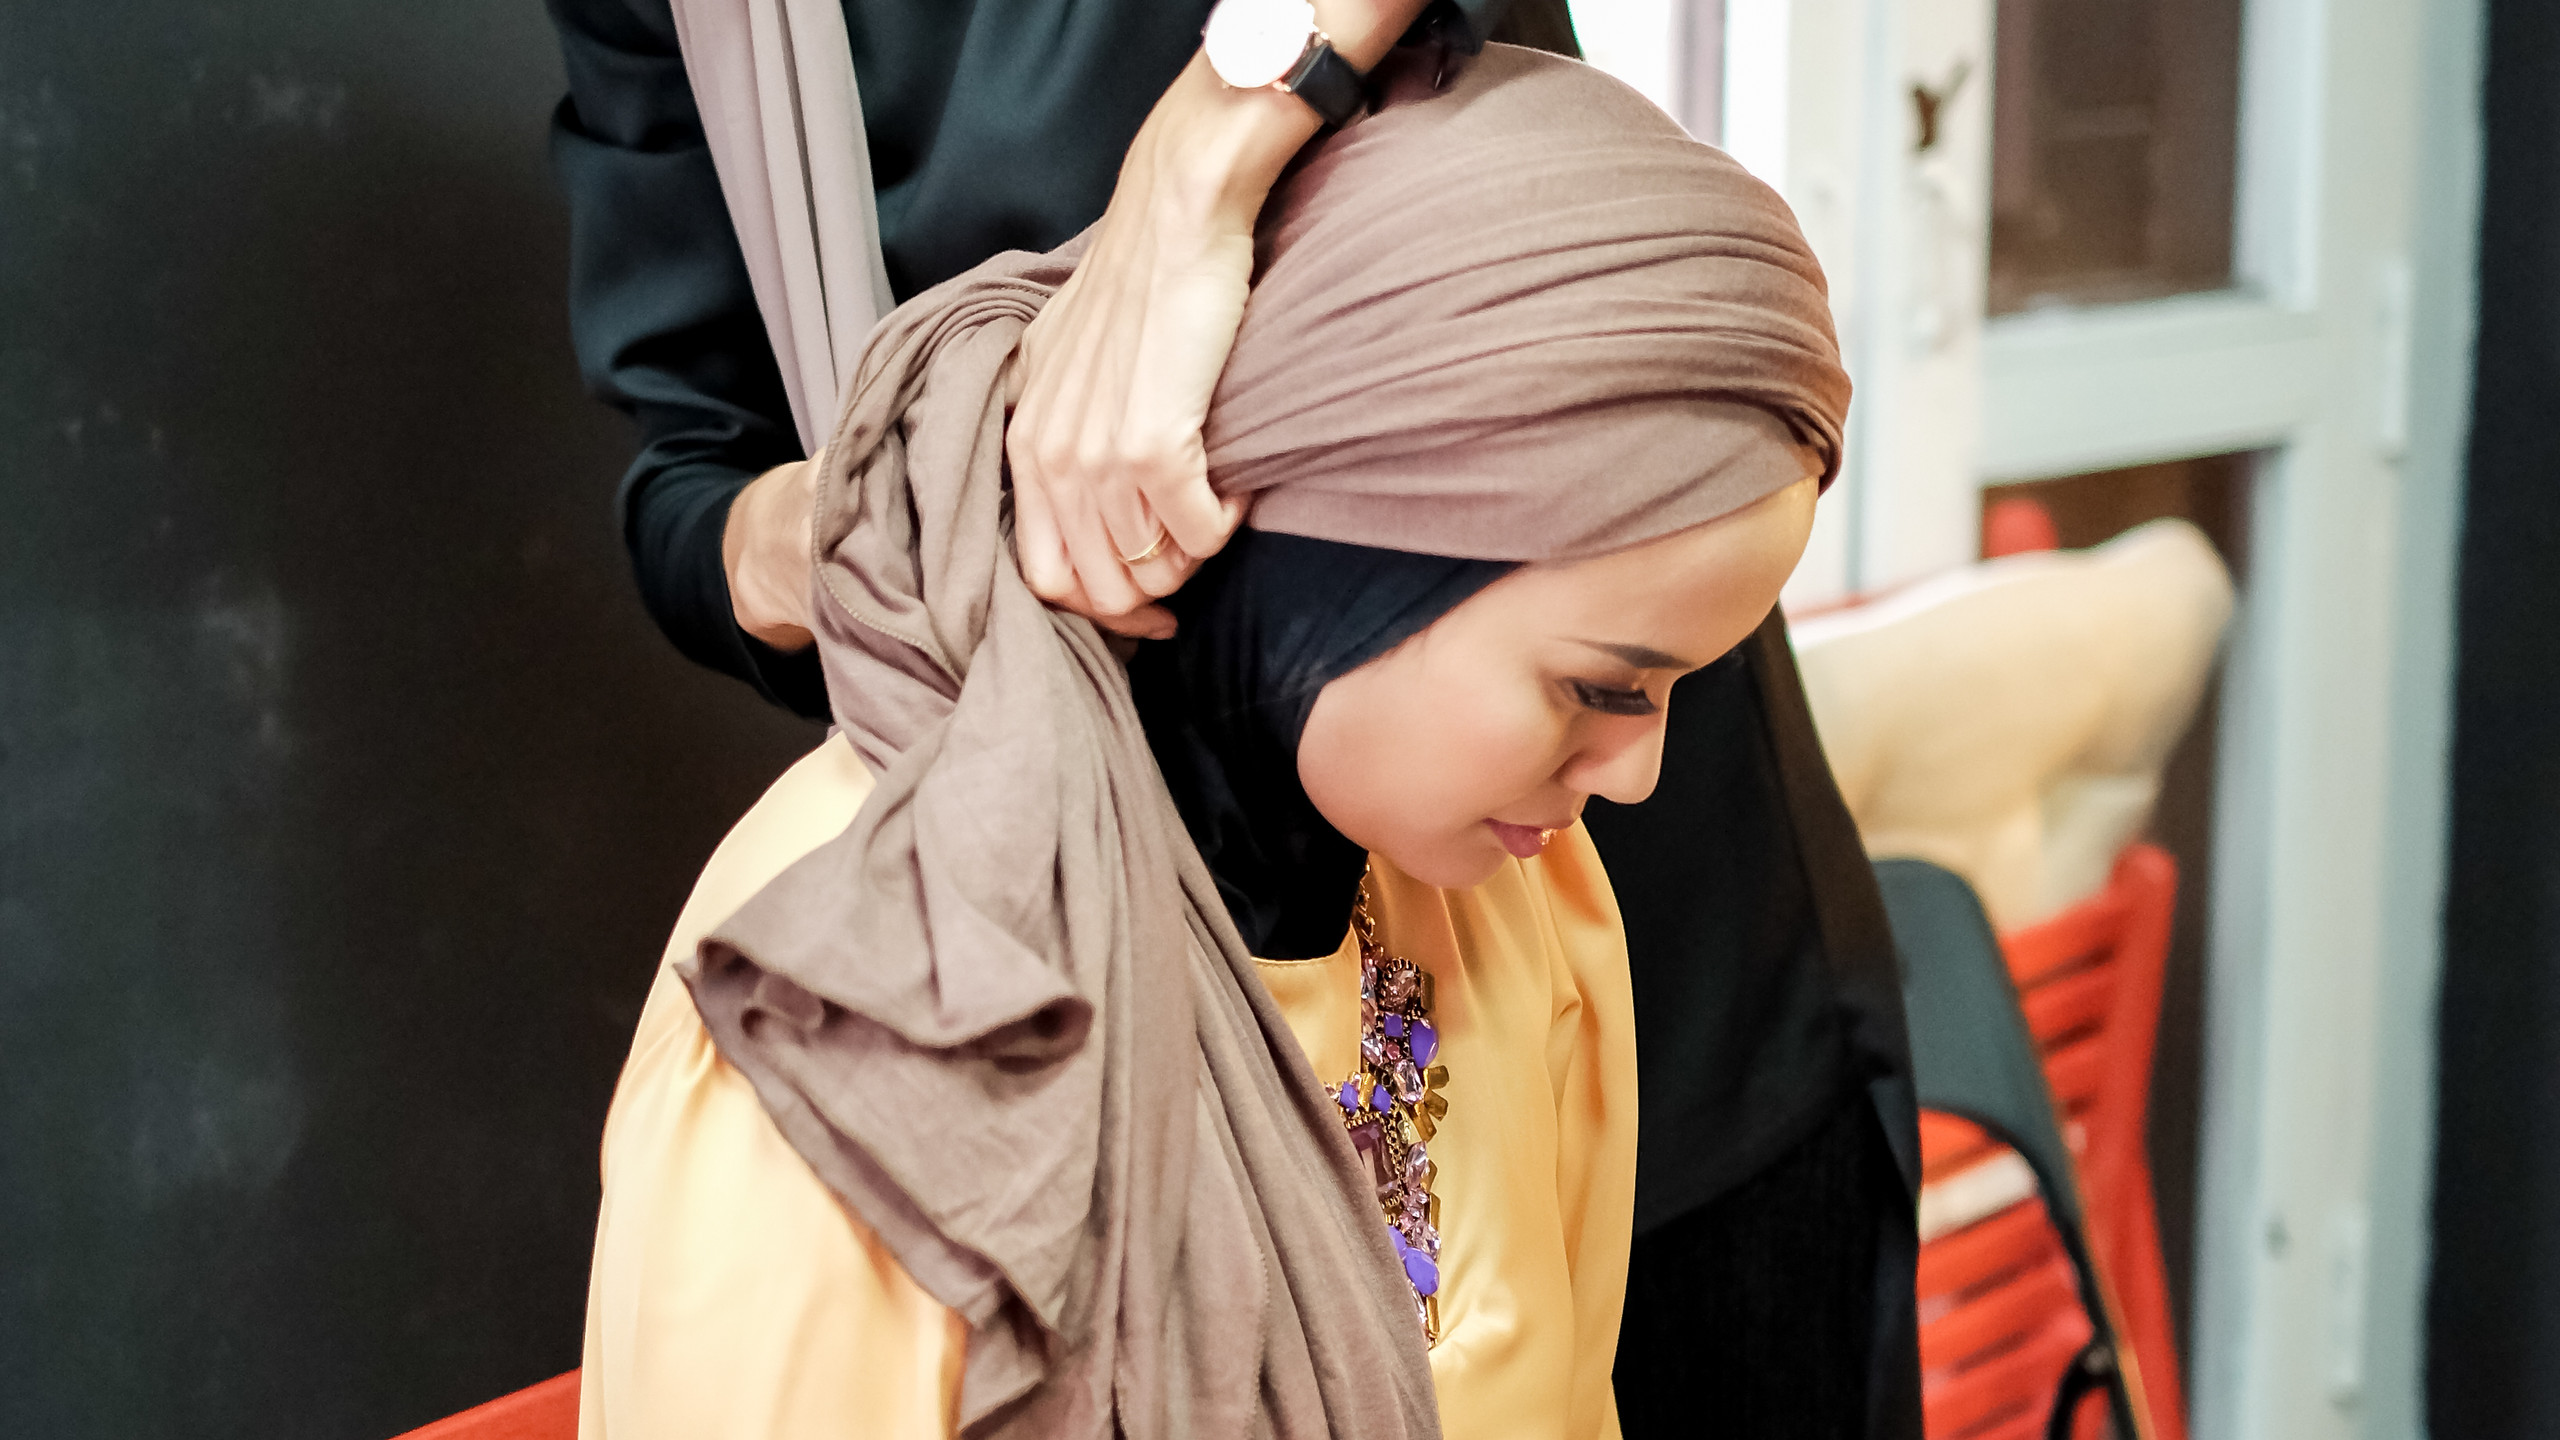 Hijab styling by Hasna B @hasnahijabstyle